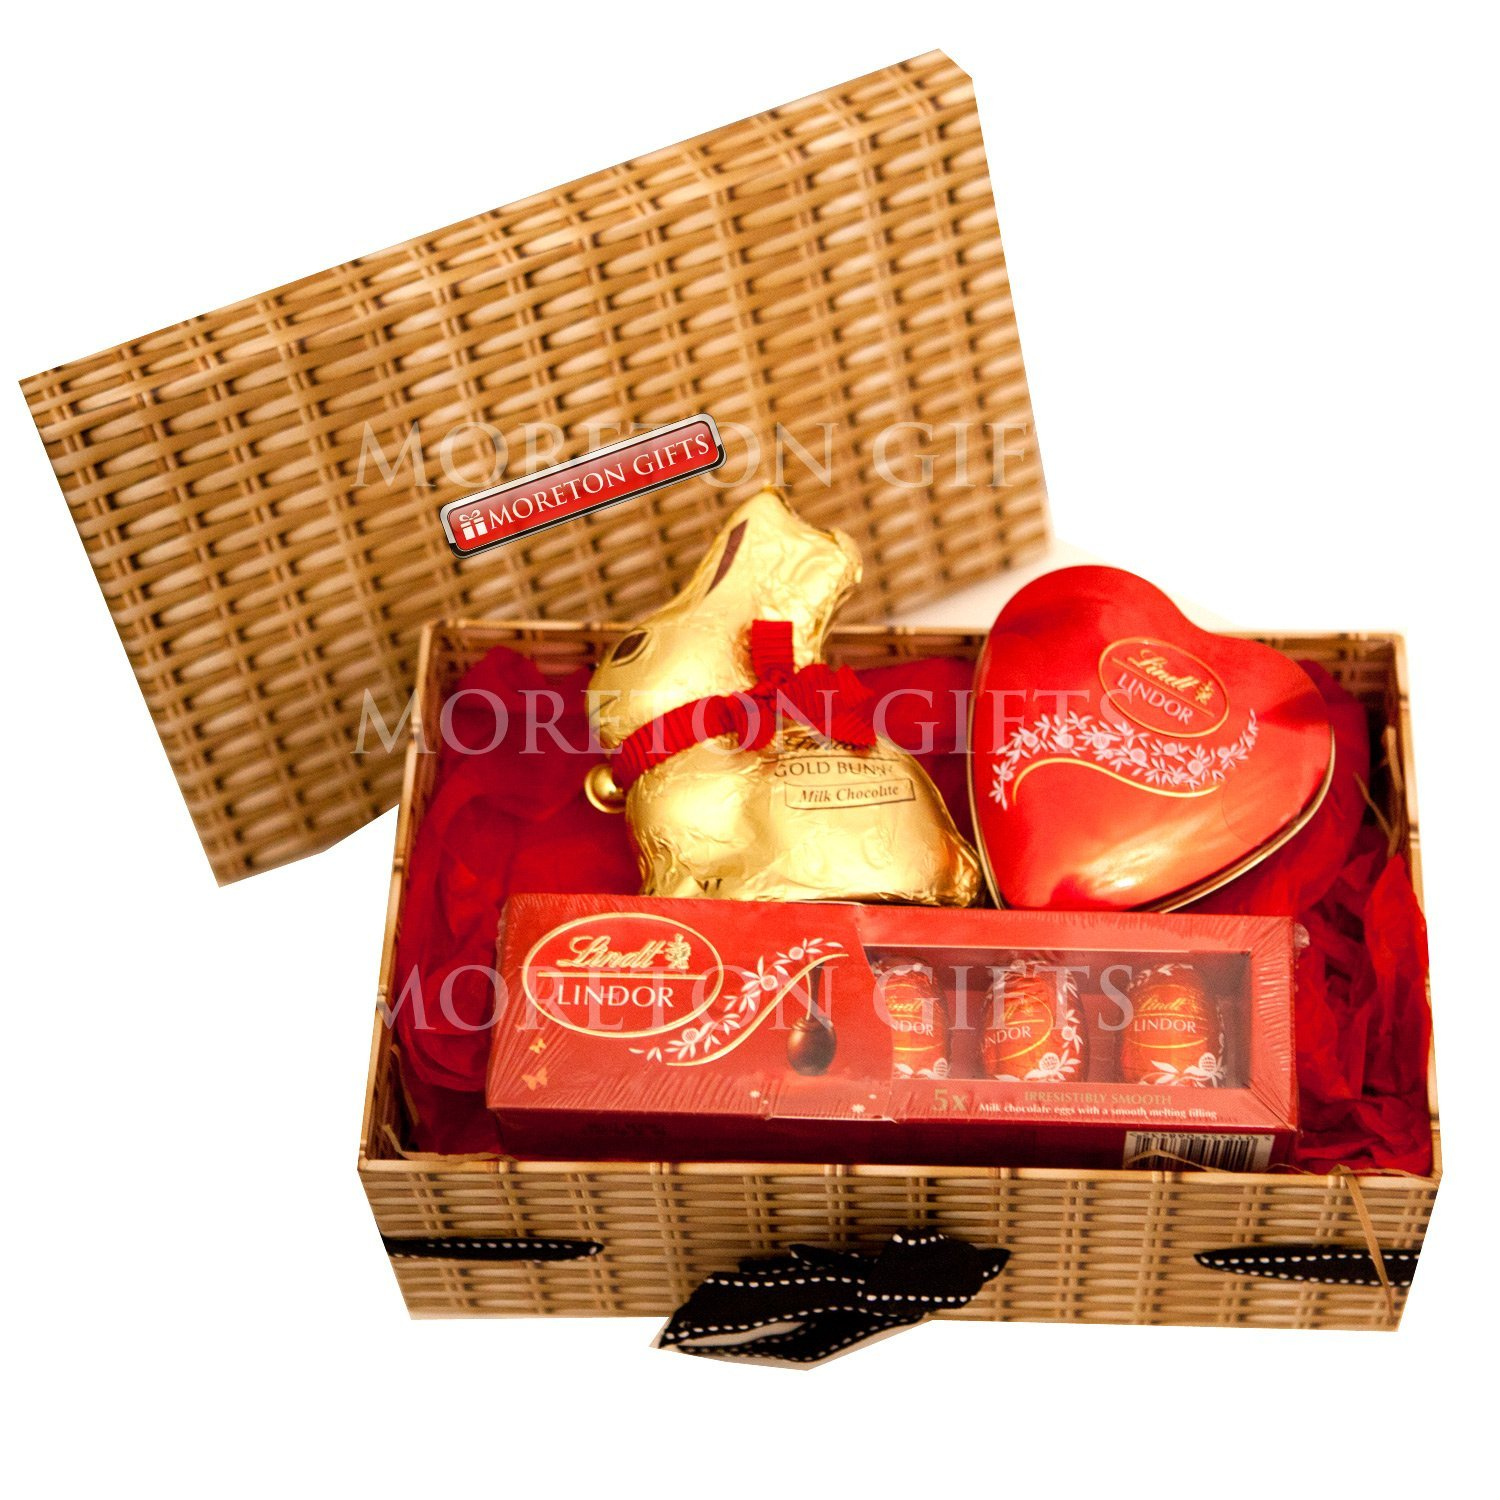 Lindt love easter chocolate hamper box gold bunny lindt heart lindt love easter chocolate hamper box gold bunny lindt heart tin lindor eggs gift box romantic easter gift by moreton gifts amazon grocery negle Choice Image